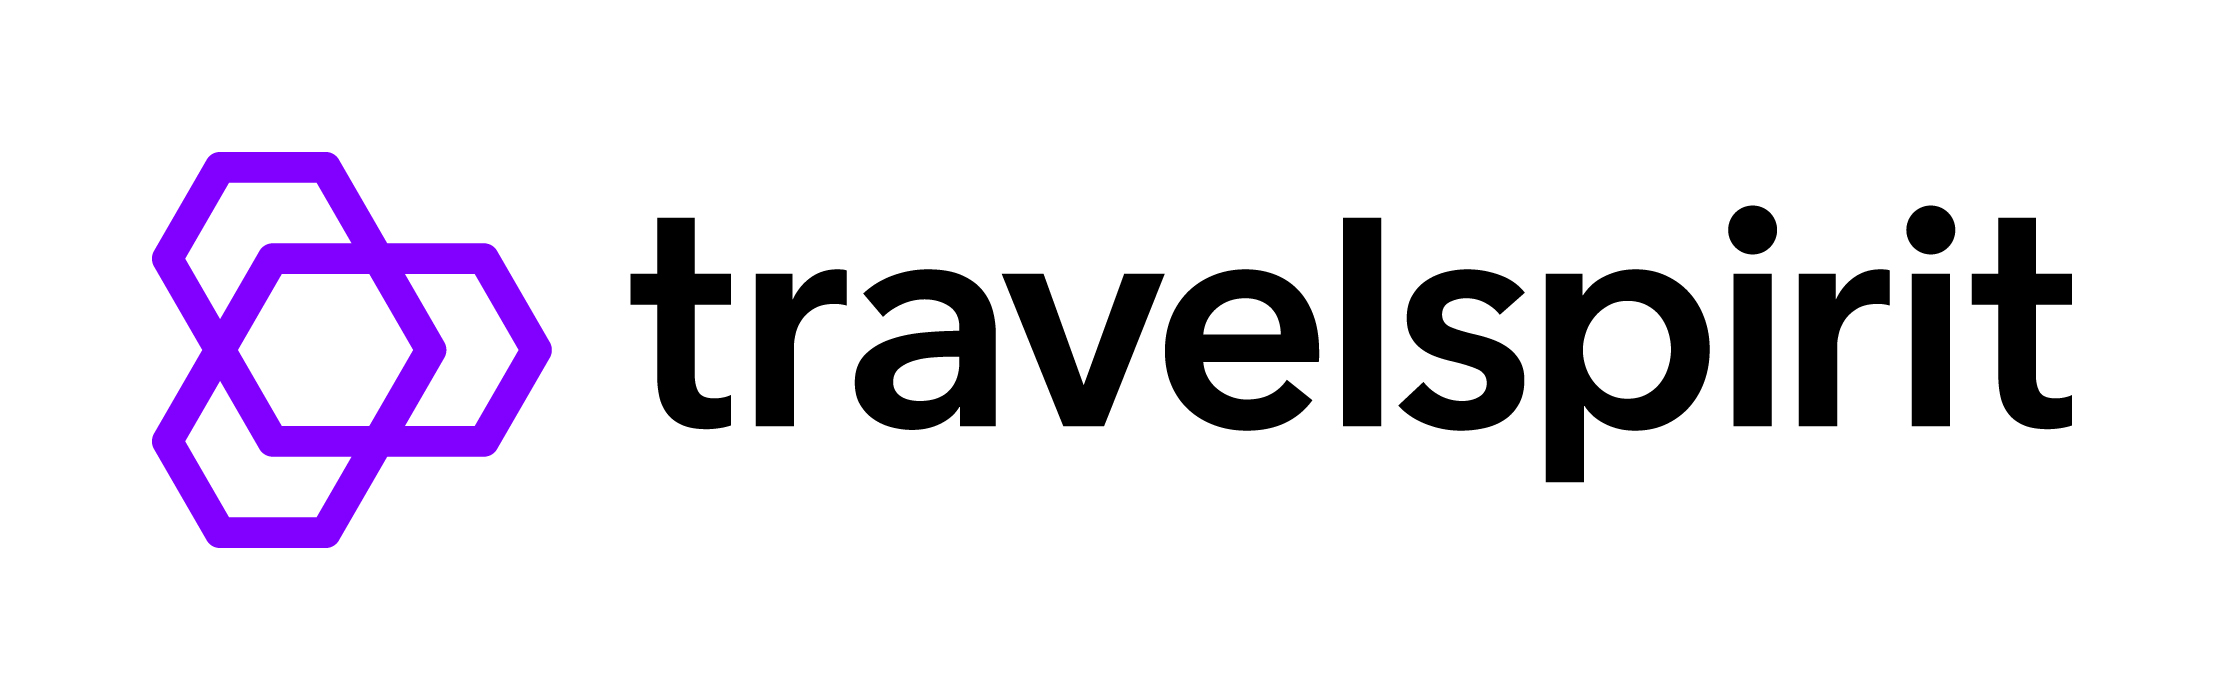 travelspirit